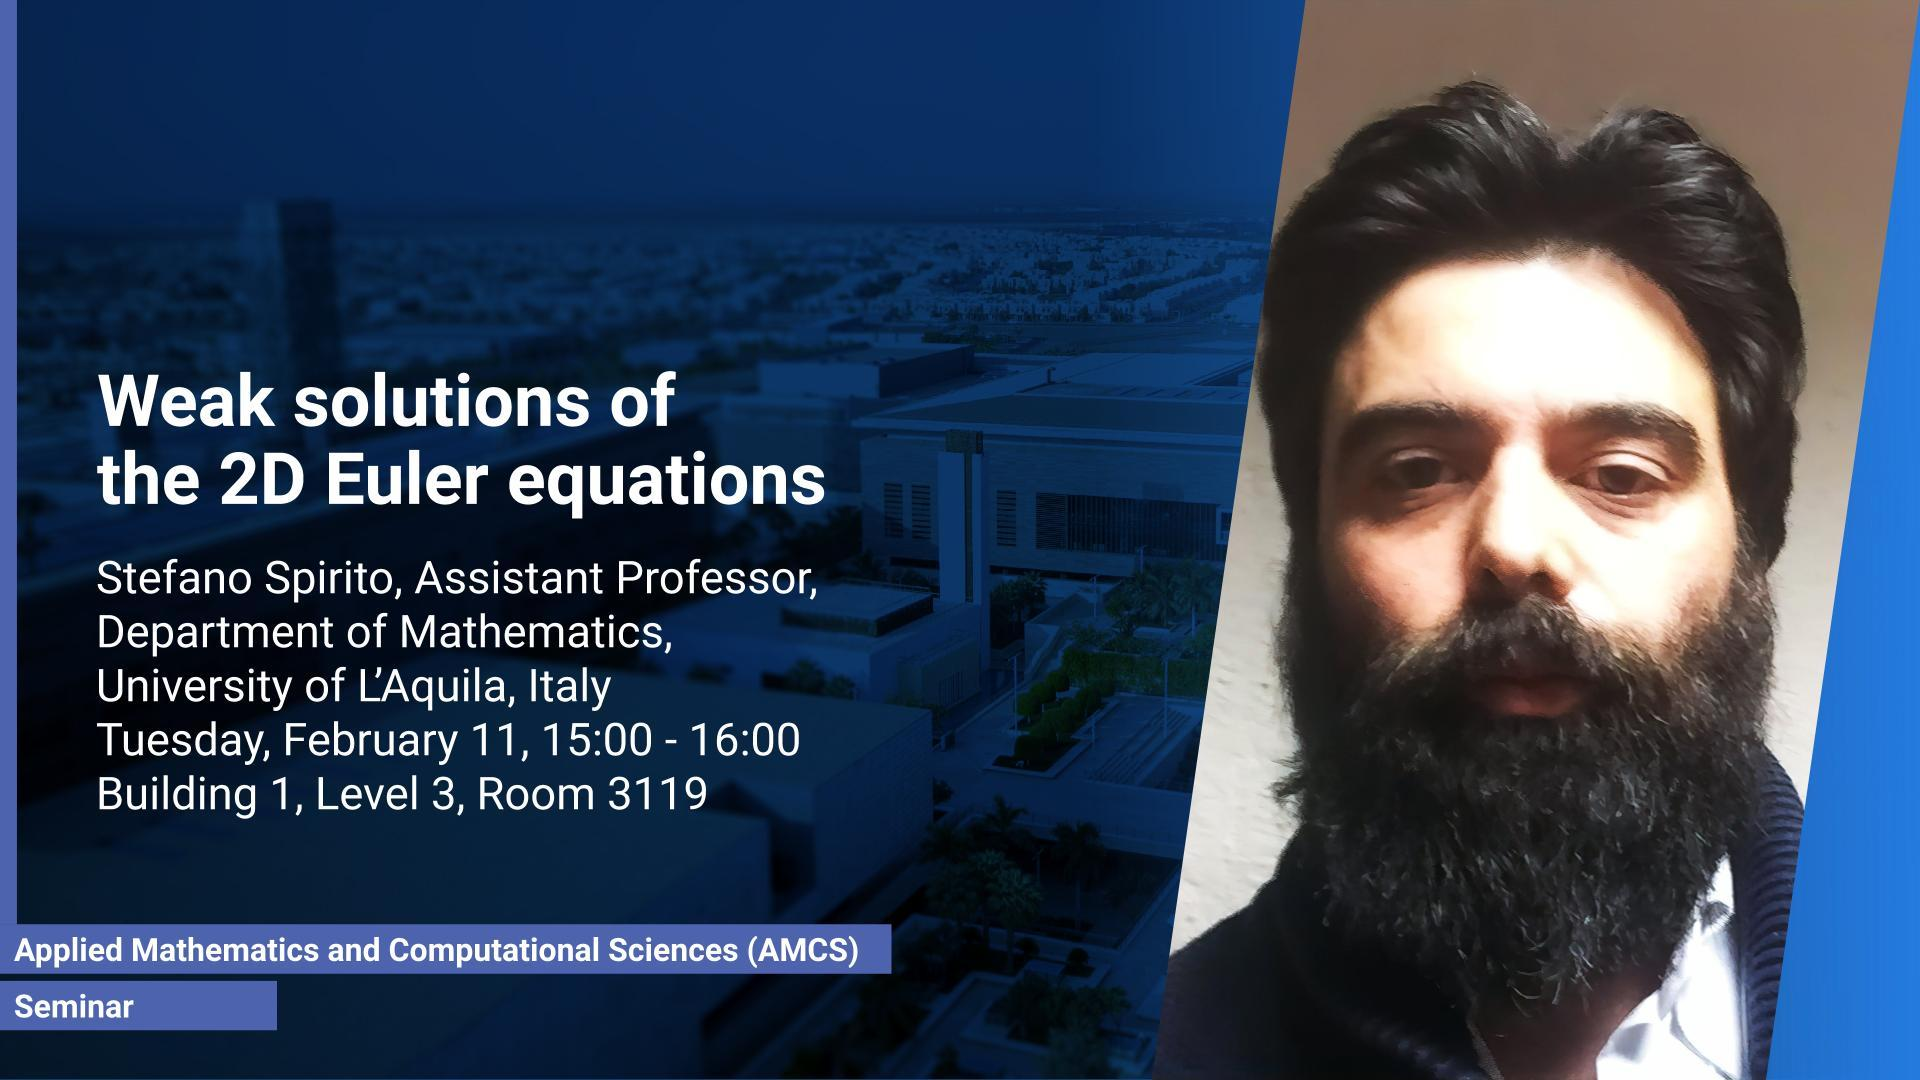 KAUST CEMSE AMCS Seminar Stefano Spirito weak solutions of 2d euler equations